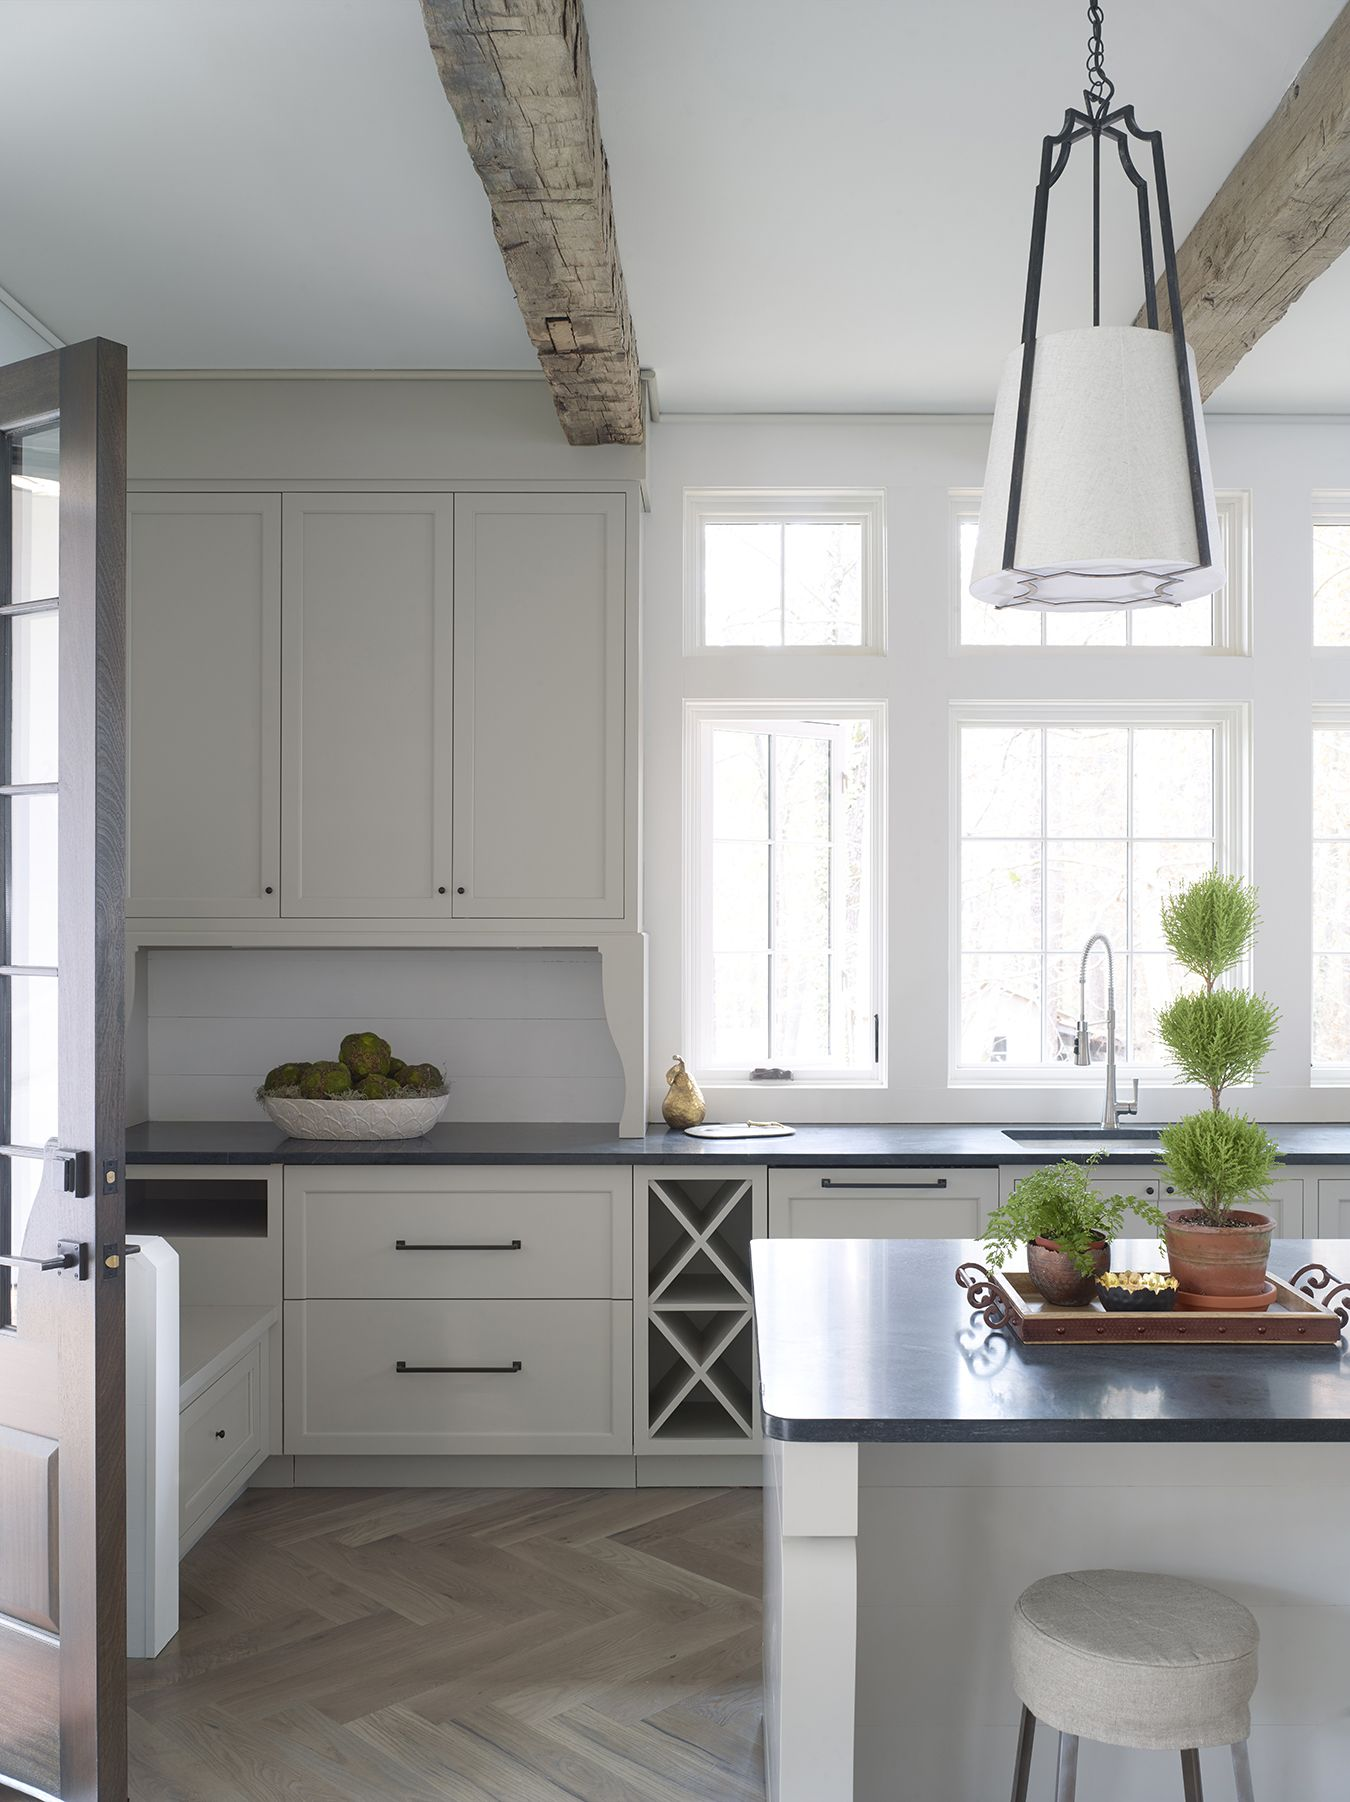 pool house kitchen. Christopher Architecture \u0026 Interiors - Pool House Kitchen Gray Cabinets Ceiling Cross Ties